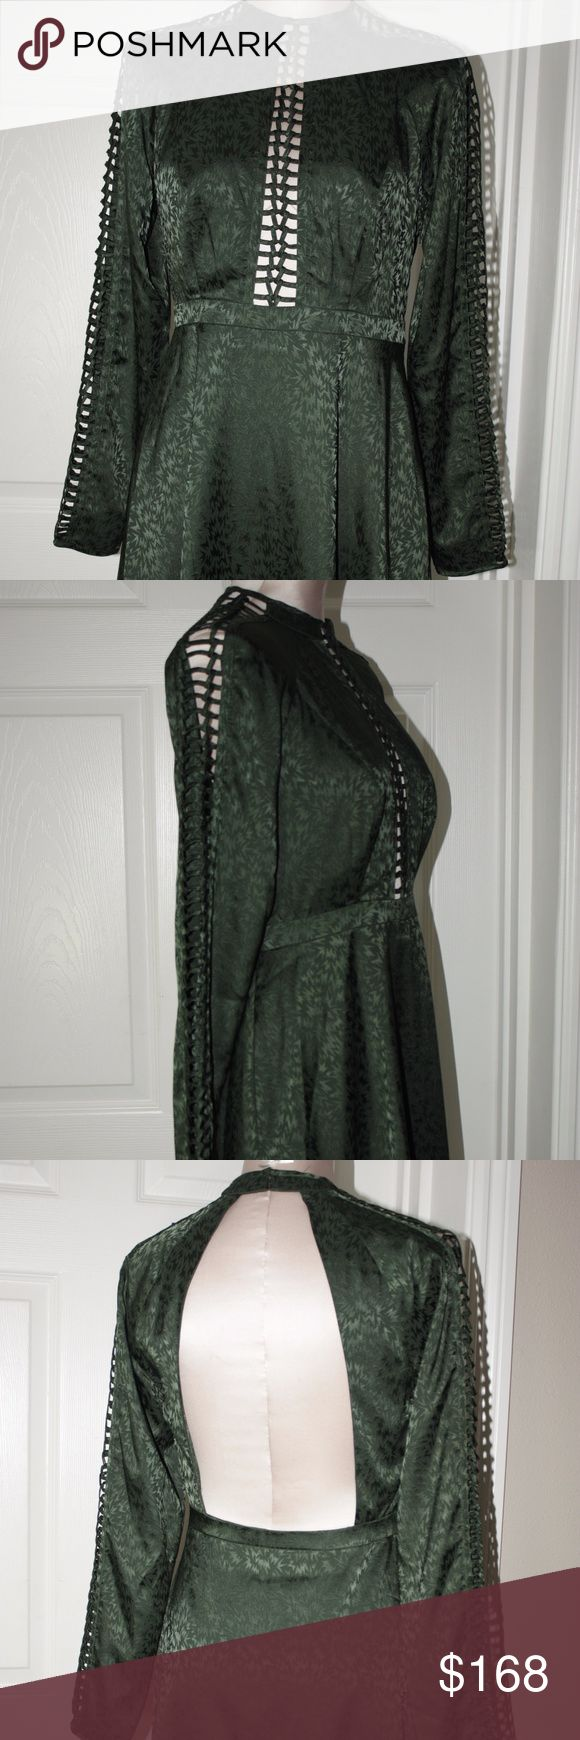 Free People Emerald Green Cutout Back Boho Chic 6 Up for sale New without tags Free People Emerald Green Cutout Front and Sleeves. Dress has large back cutout.Dress is empire style.Super Cute cocktail/party/date. Very Boho Chic  Size 6 Free People Dresses Mini